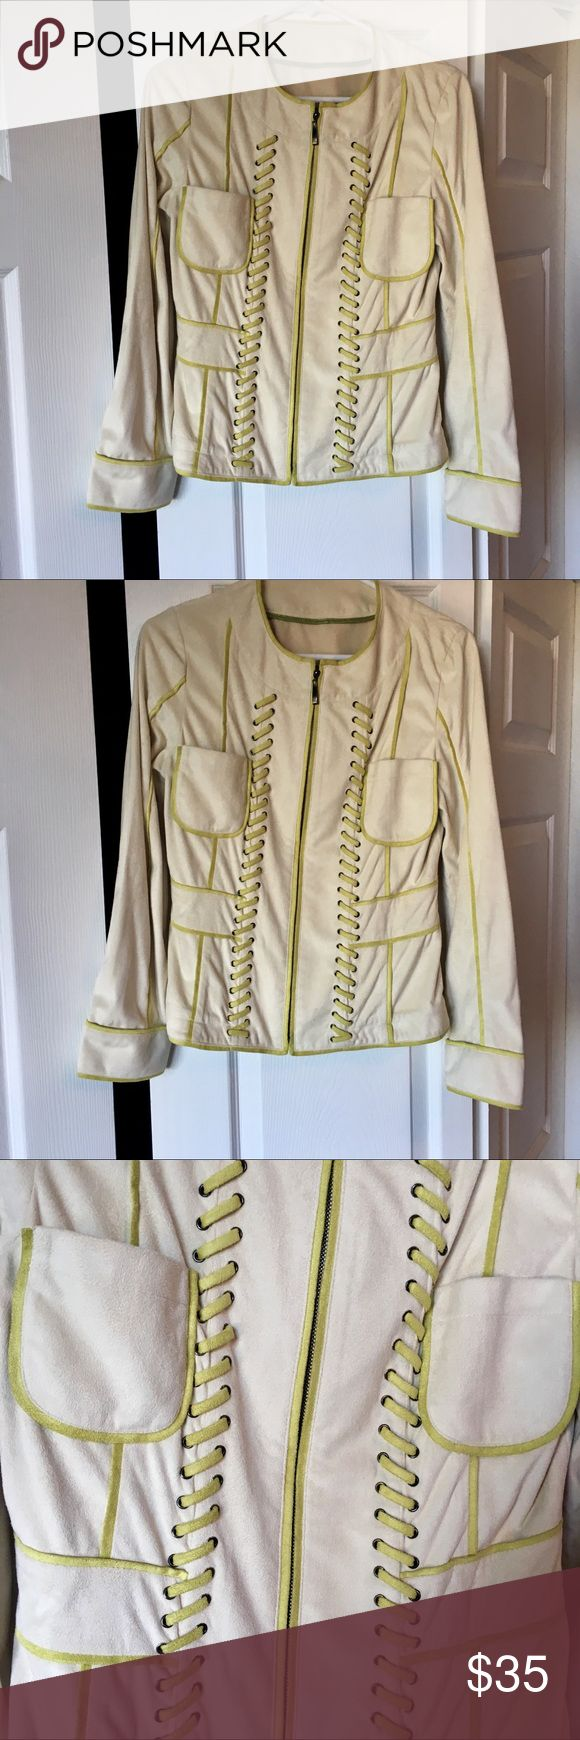 """Cream & Lime Green Jacket This was a designer sample so no real tags - may have been worn once and sitting in my closet. Euro sizing. Bust is 17"""" and 24"""" length. Feels suede like but probably a poly material. Jackets & Coats"""